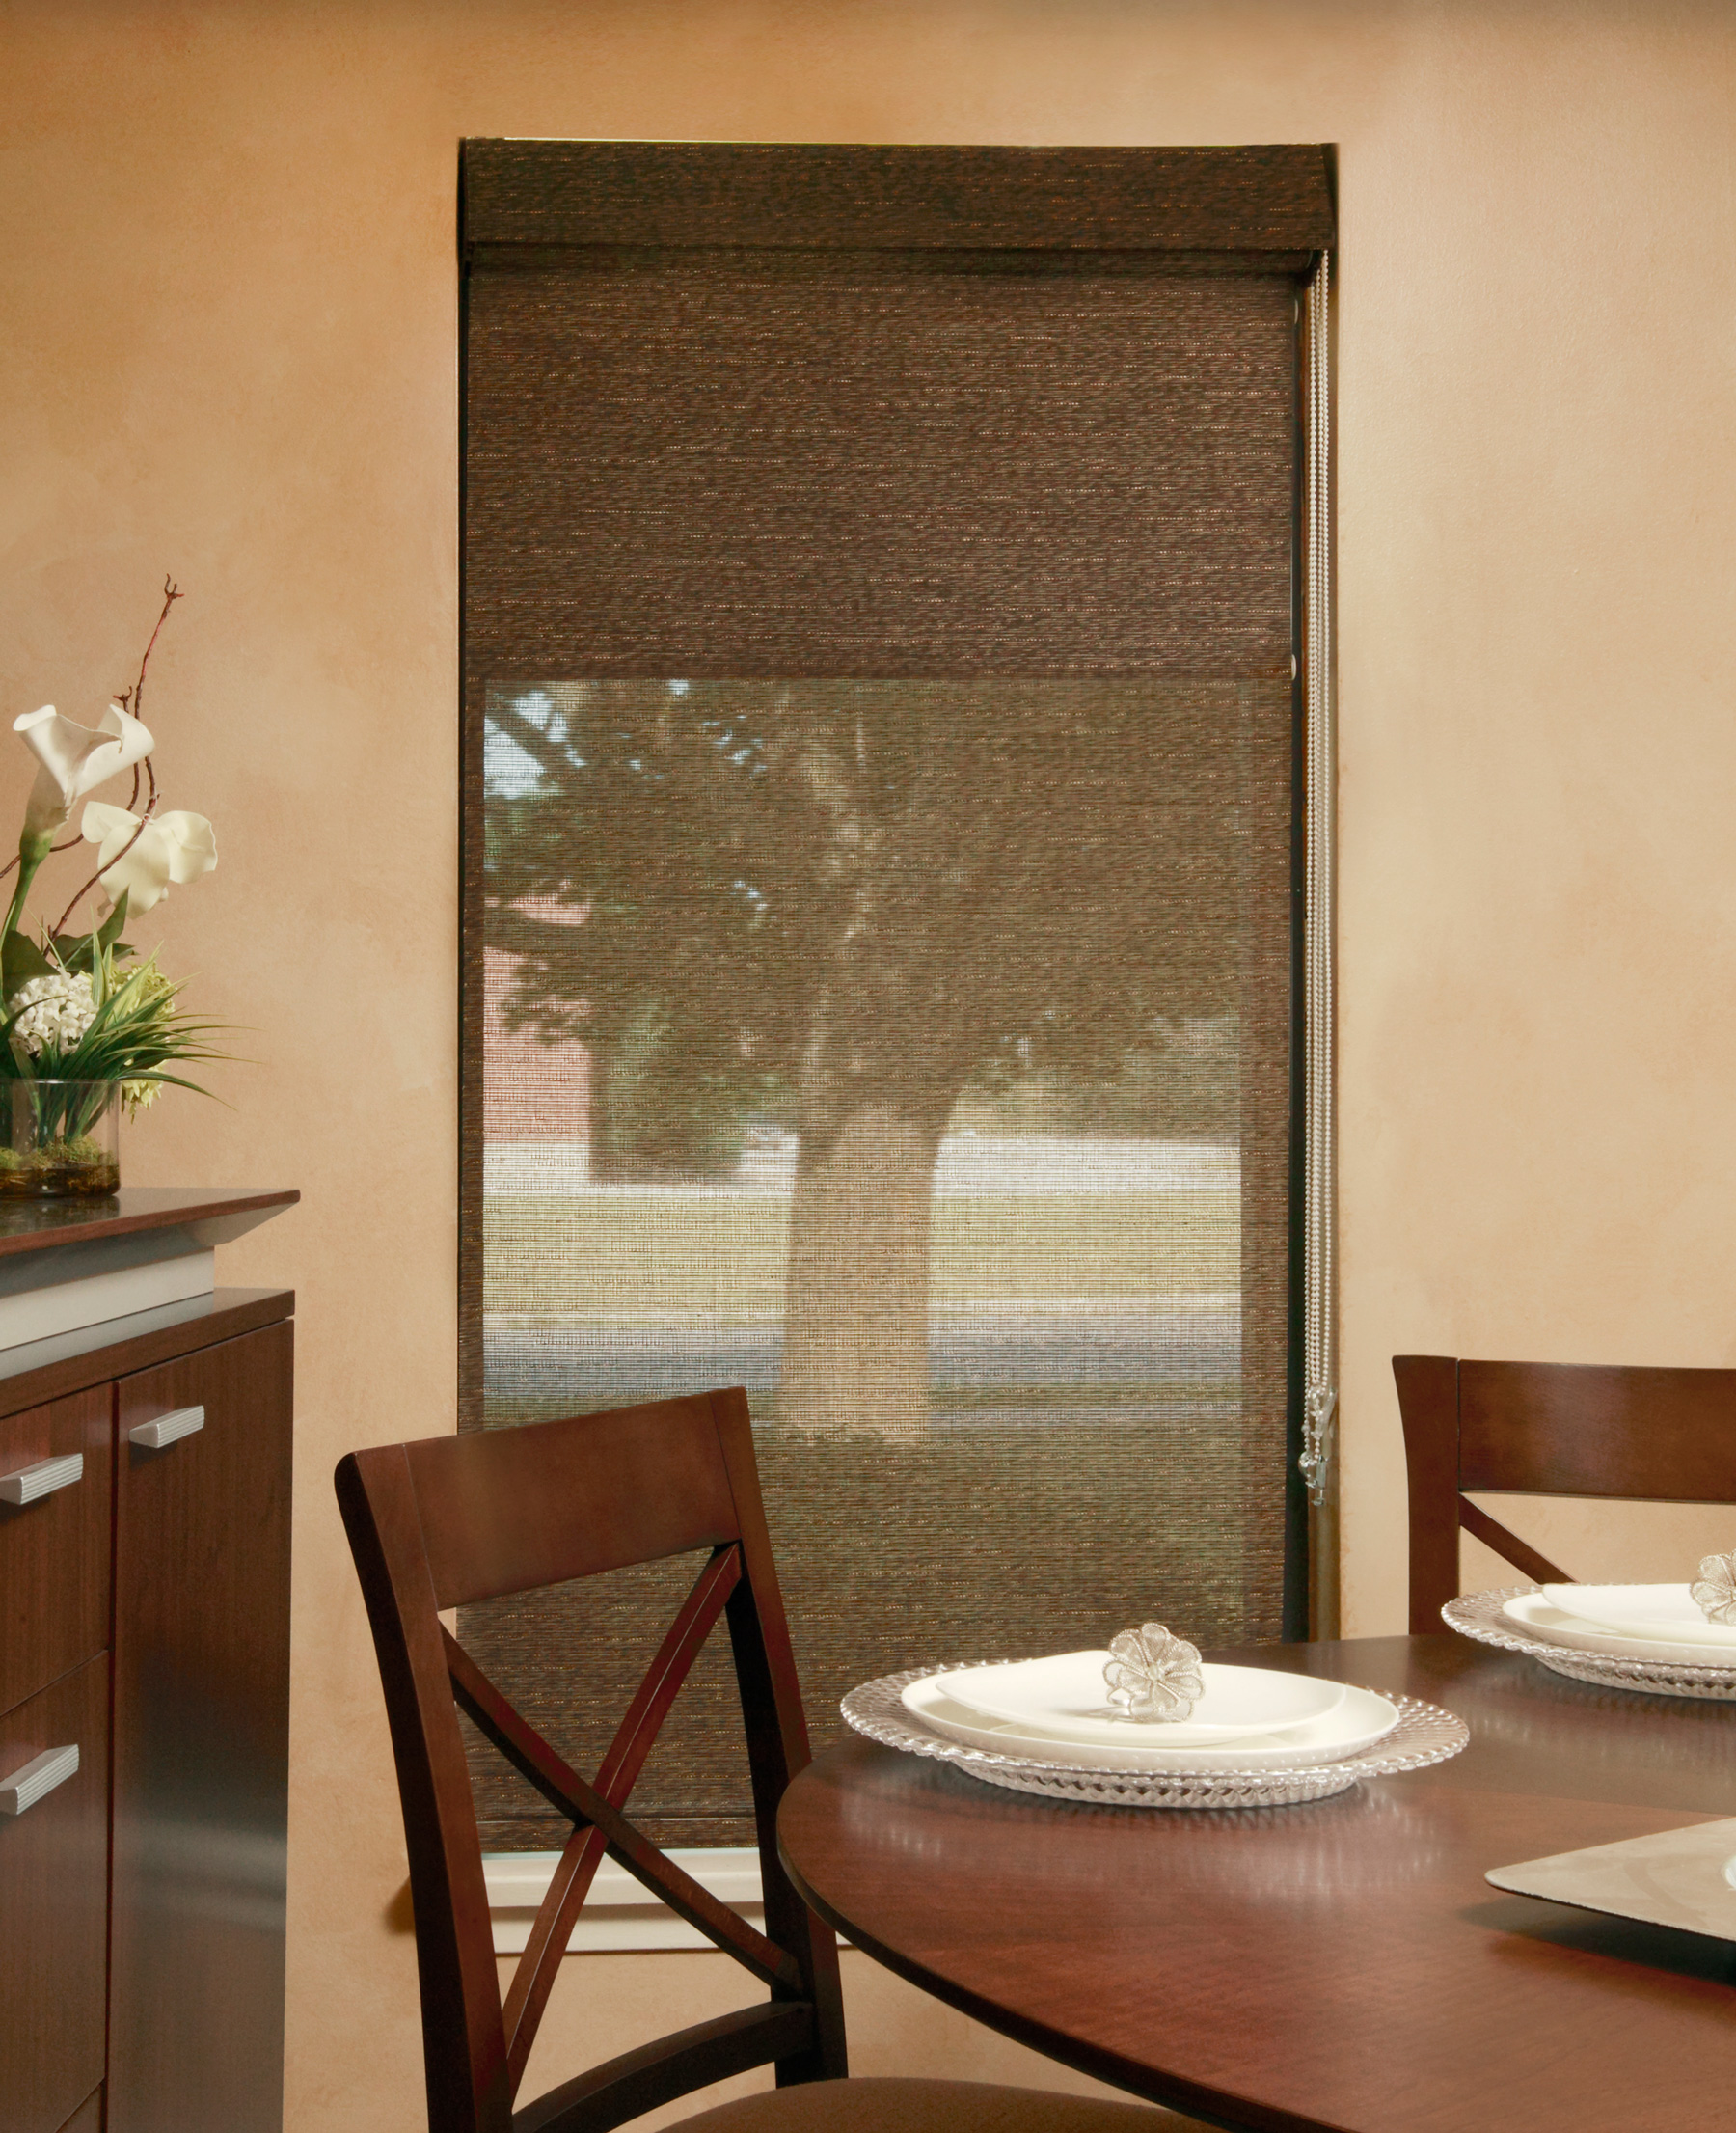 s lindsay shops the decor home blinds it simply select best